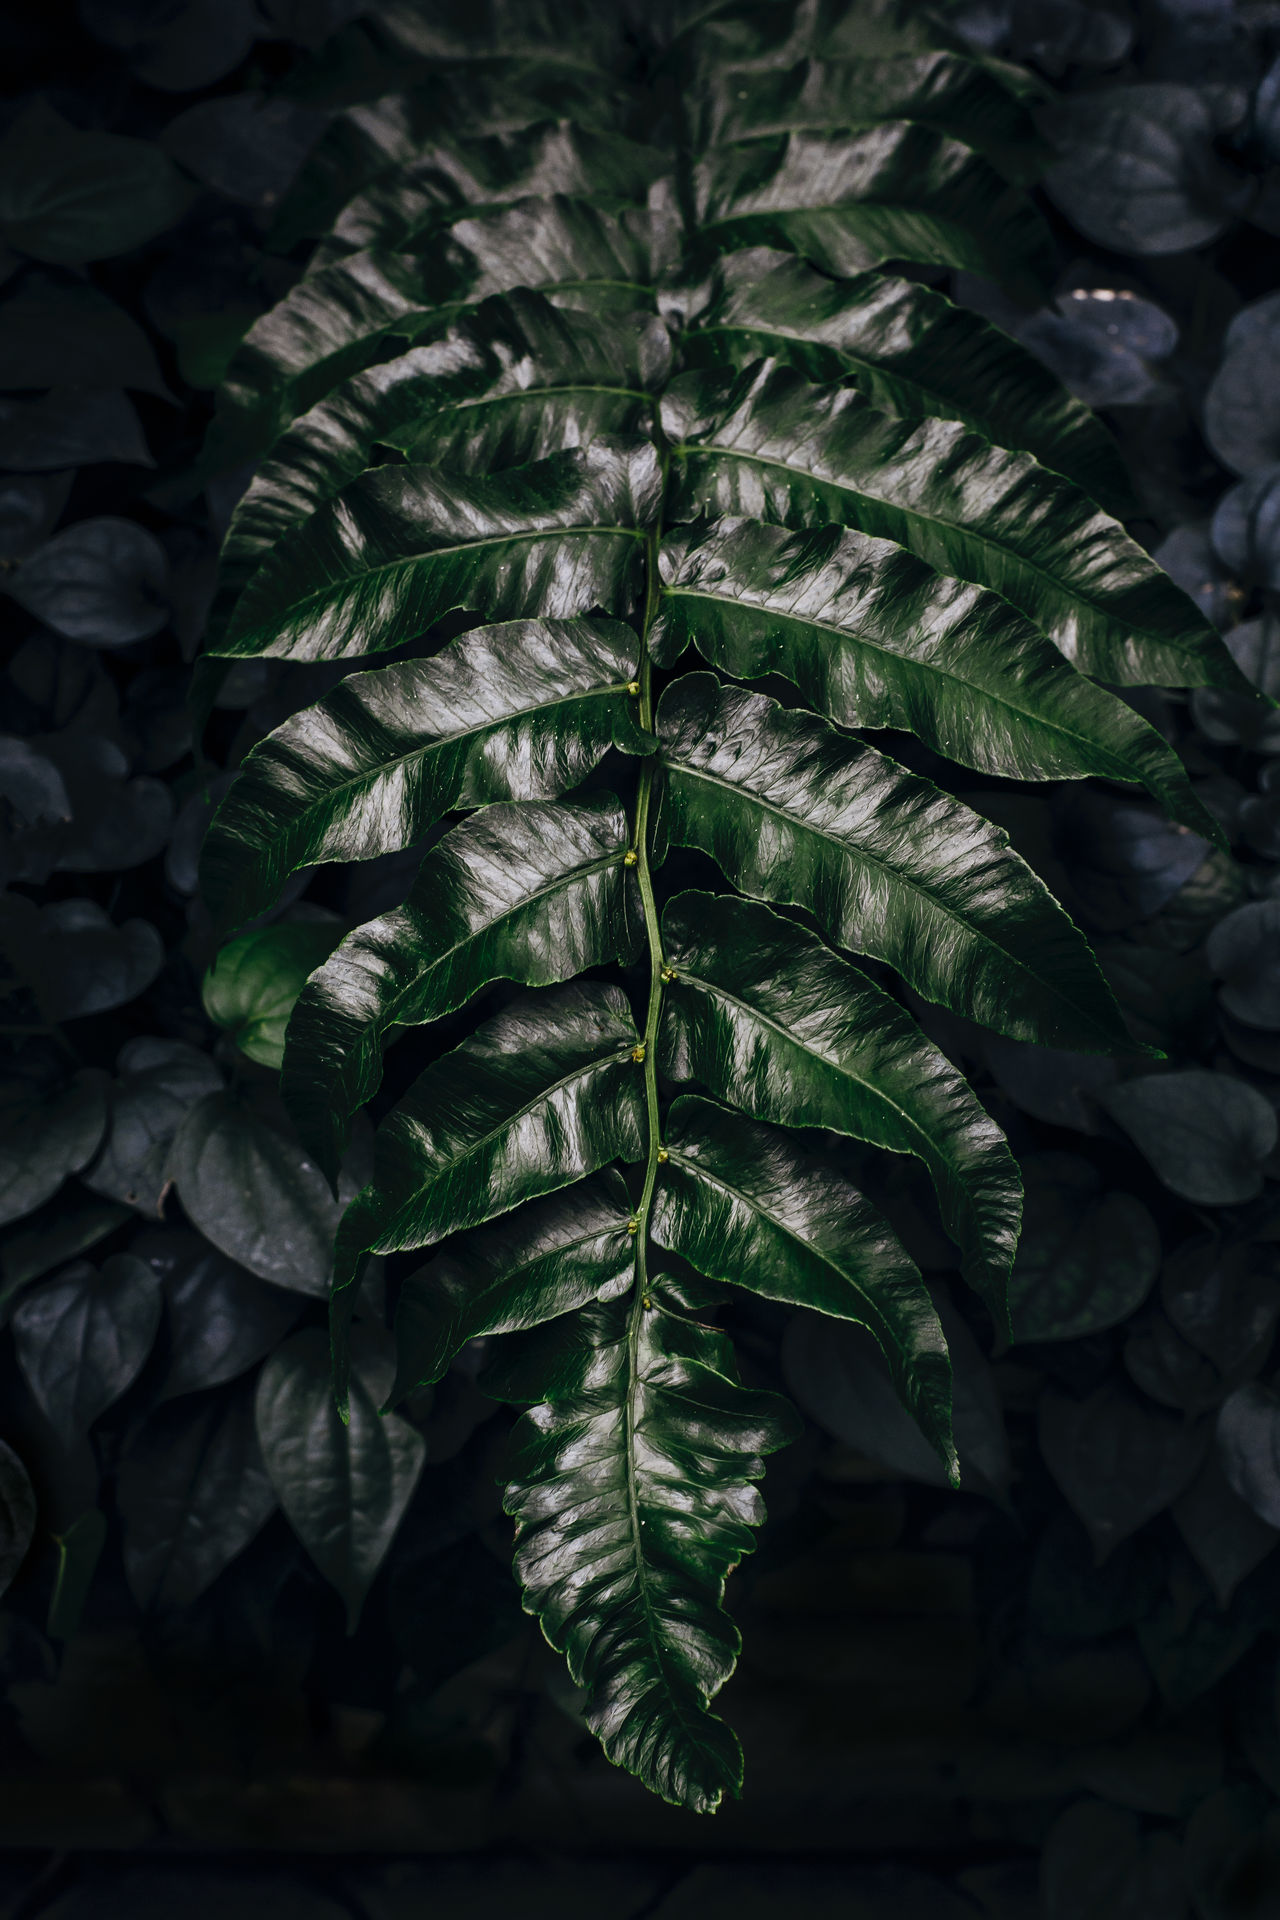 Single and proud Beauty In Nature Close-up Fern Fragility Freshness Green Color Green Leaves Greenery Growth Huge Leaf Leaf Nature No People Outdoors Plant